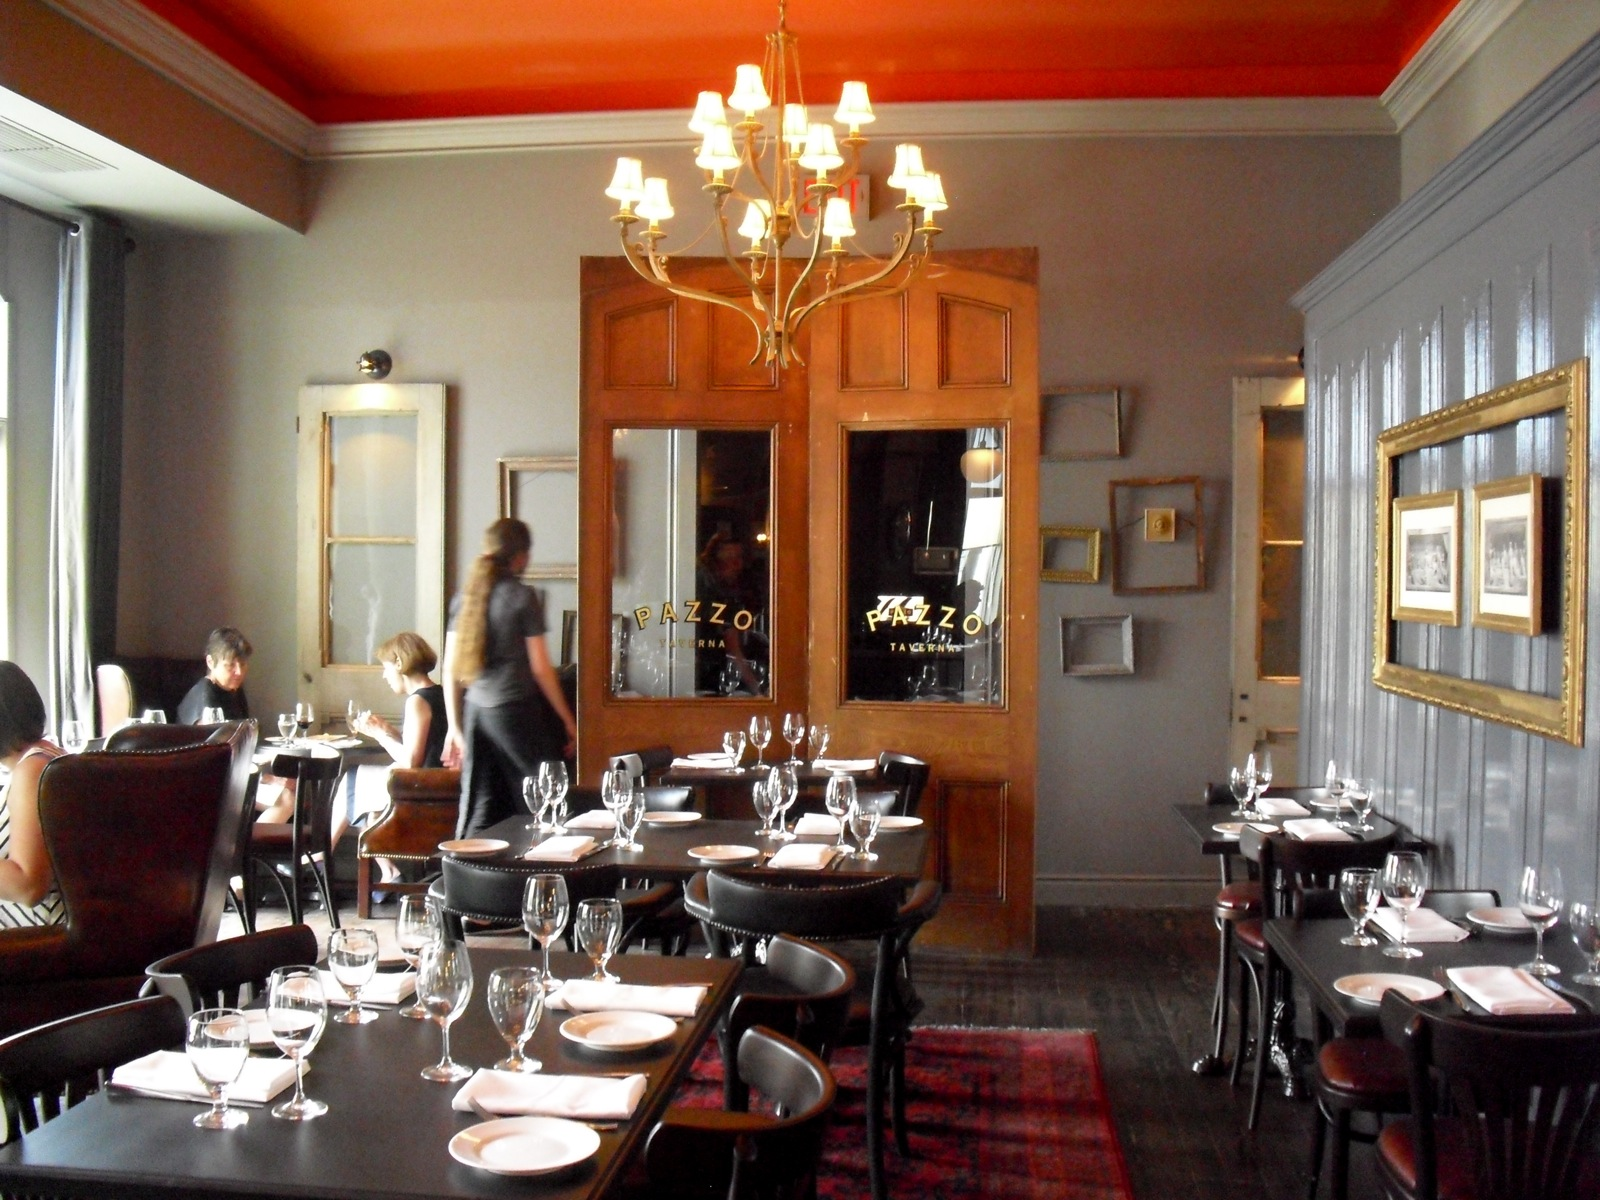 Interior Of Upscale Restaurant With Candle Lamp Chandelier And Mirror Armoire